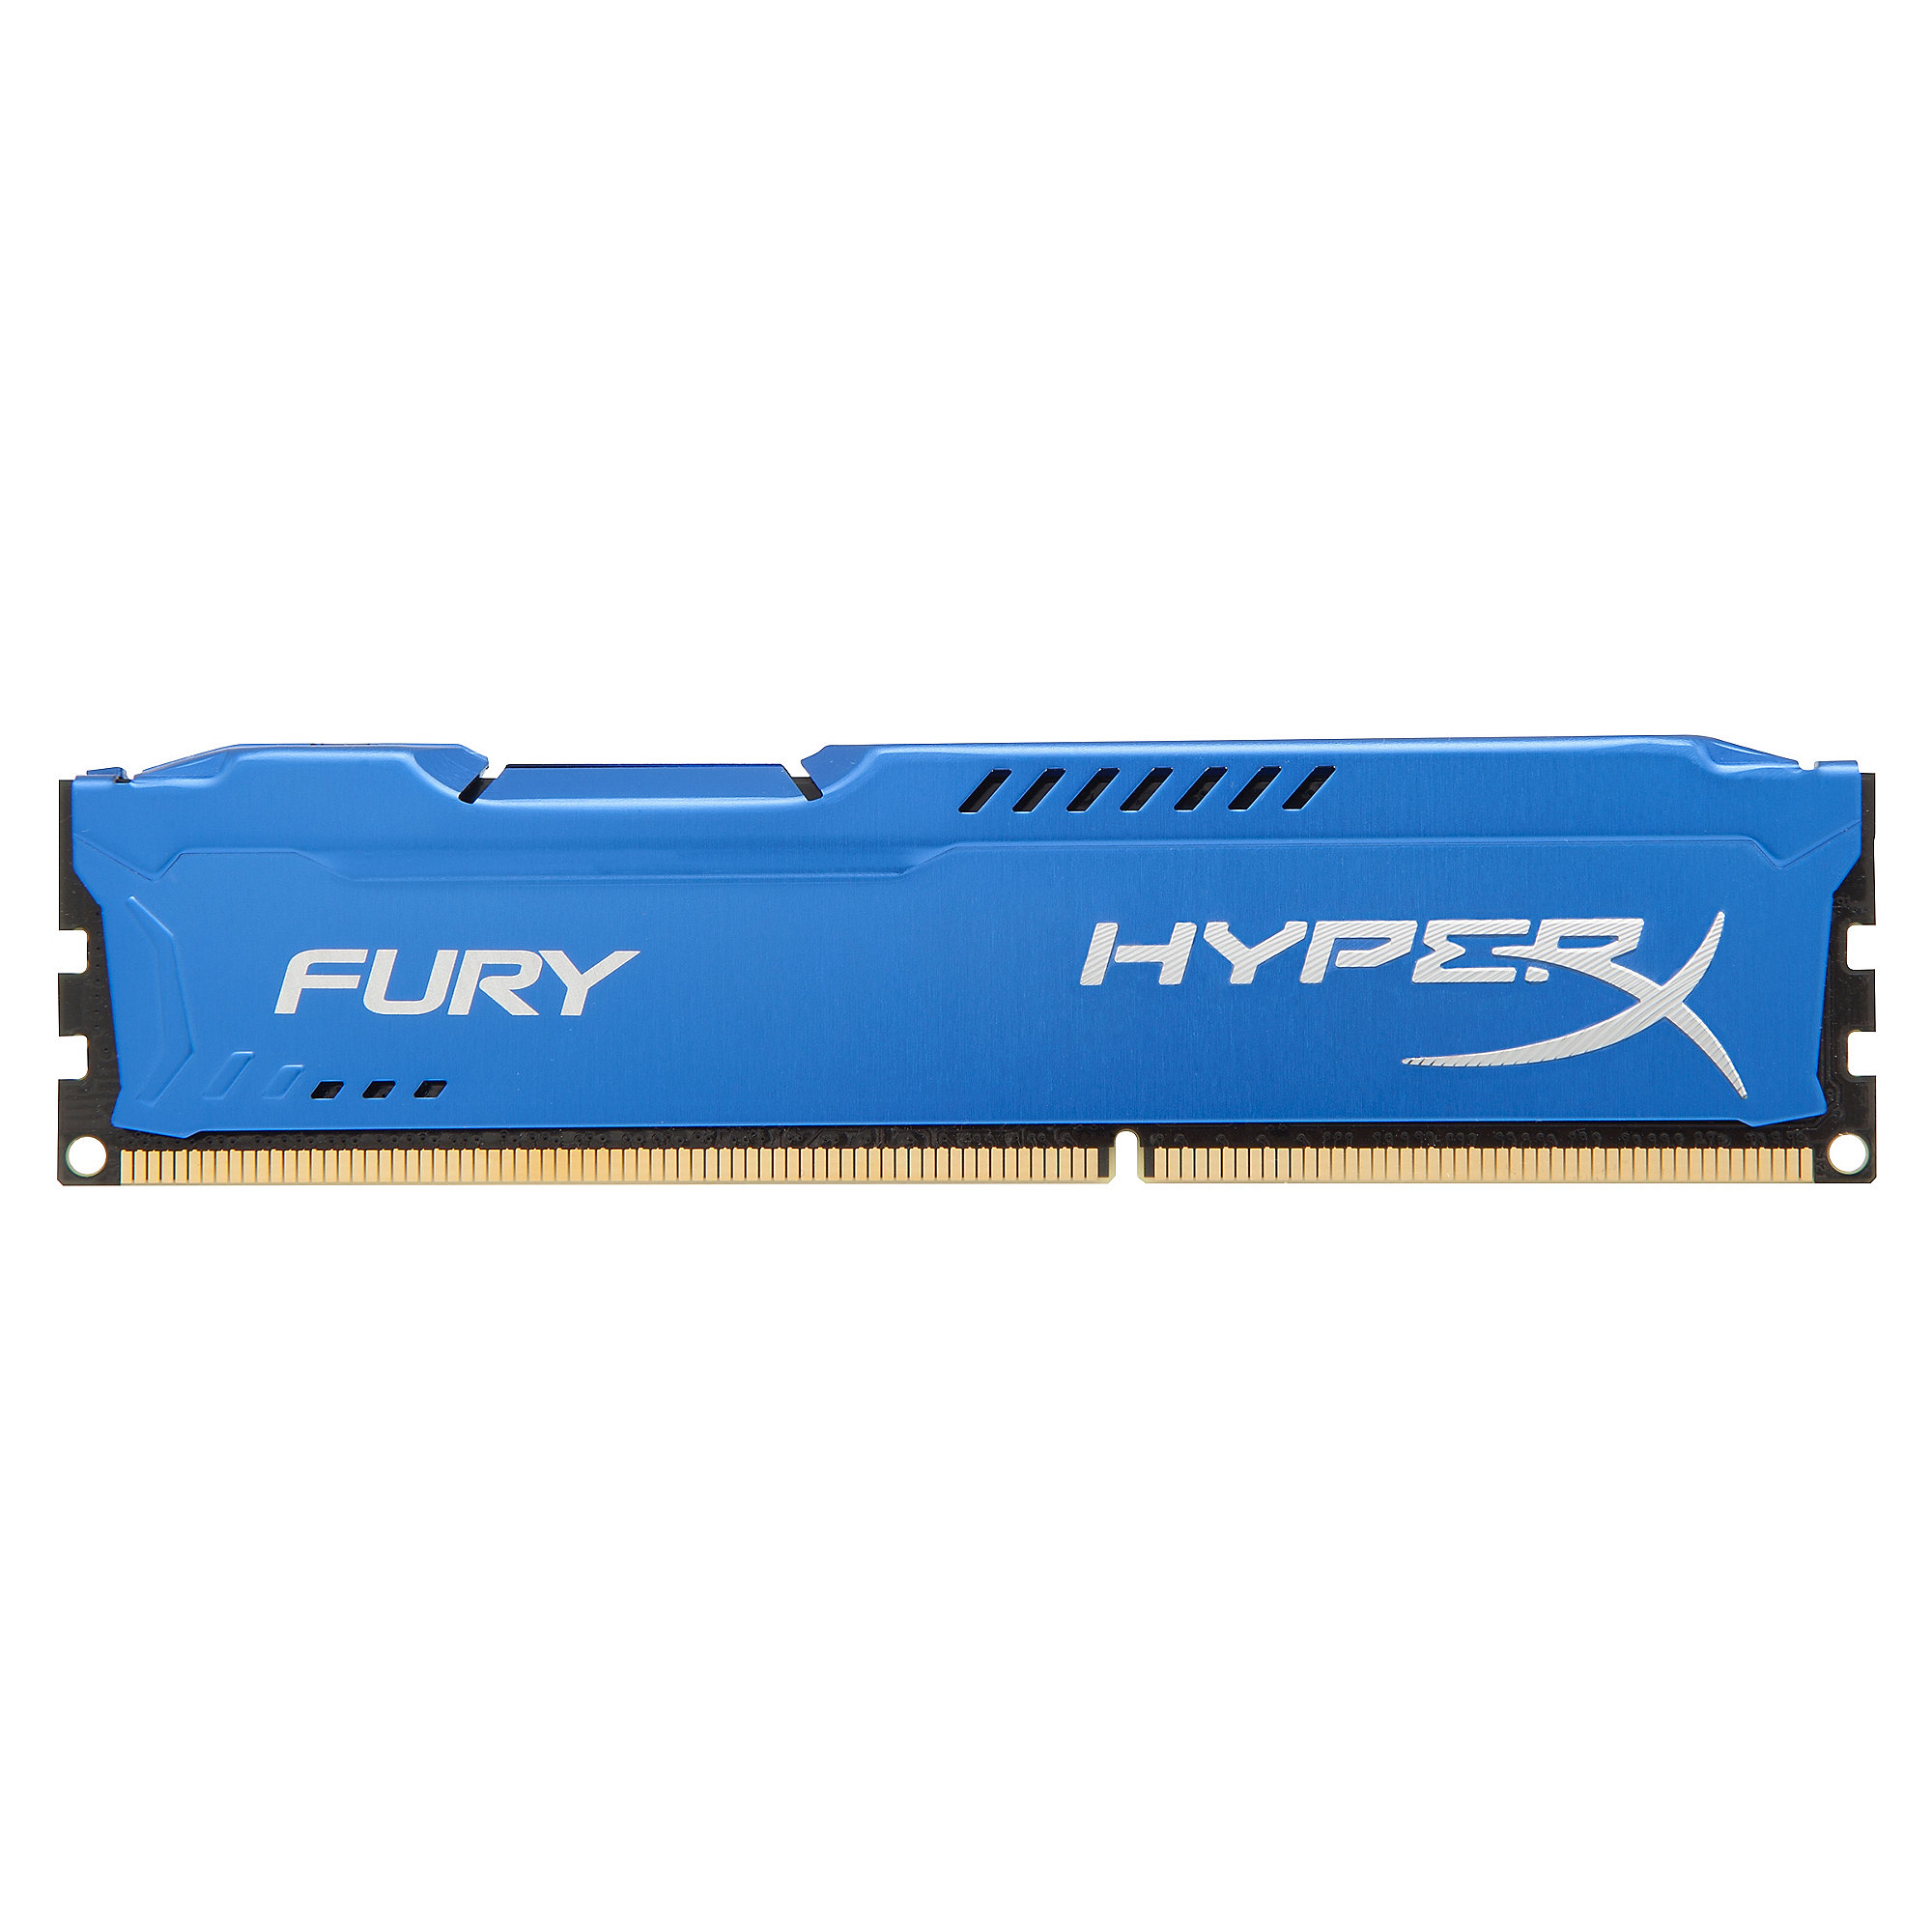 4GB Kingston HyperX Fury DDR3-1333 CL9 RAM